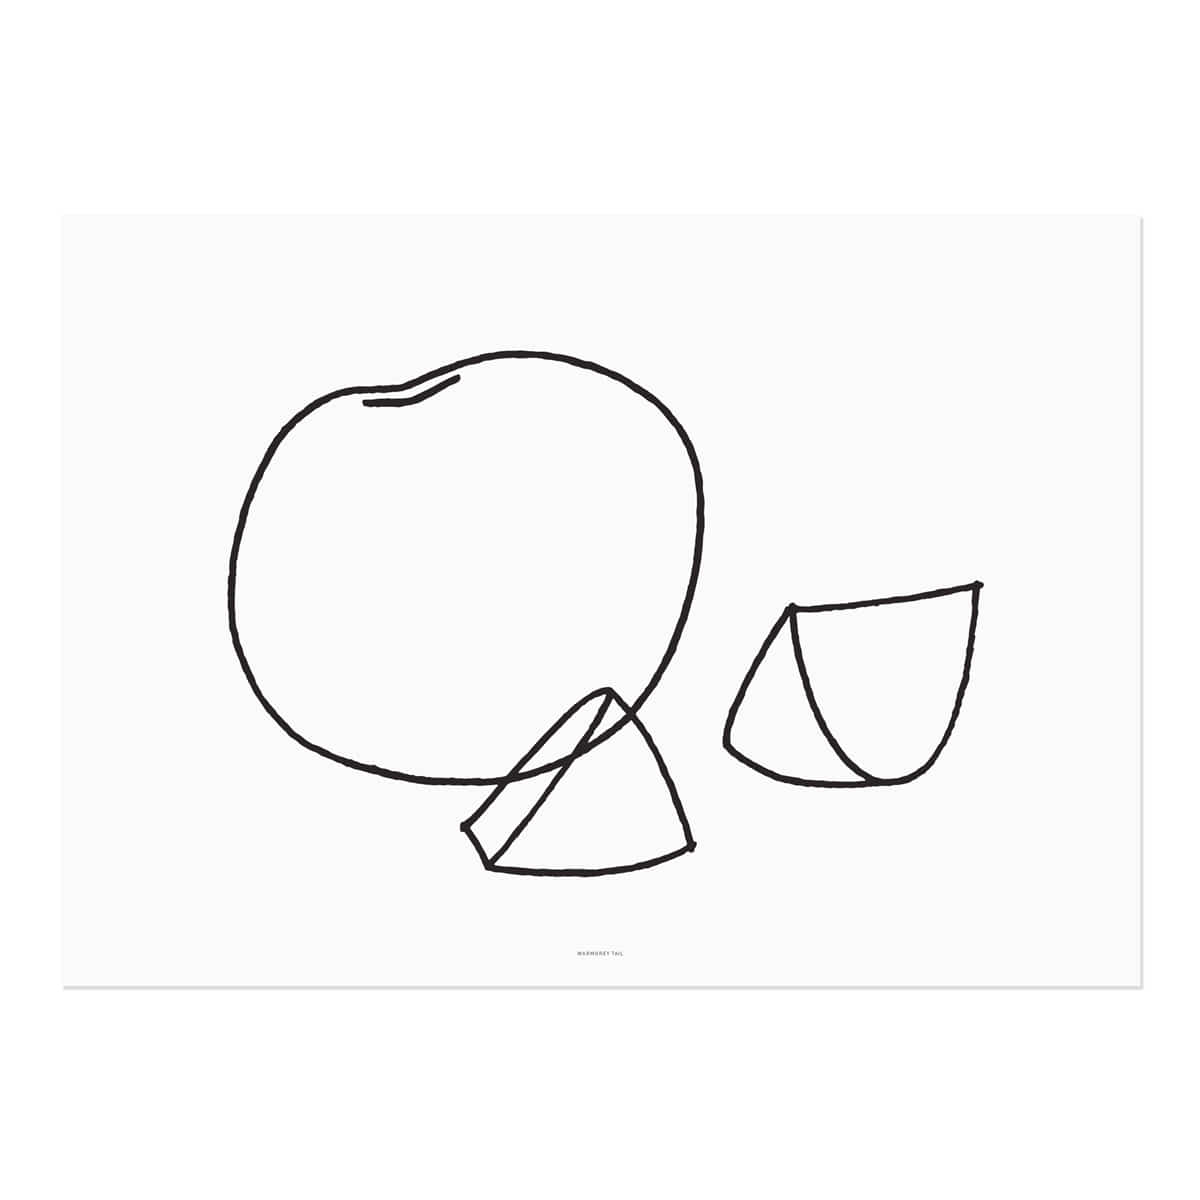 Fruits - line drawing